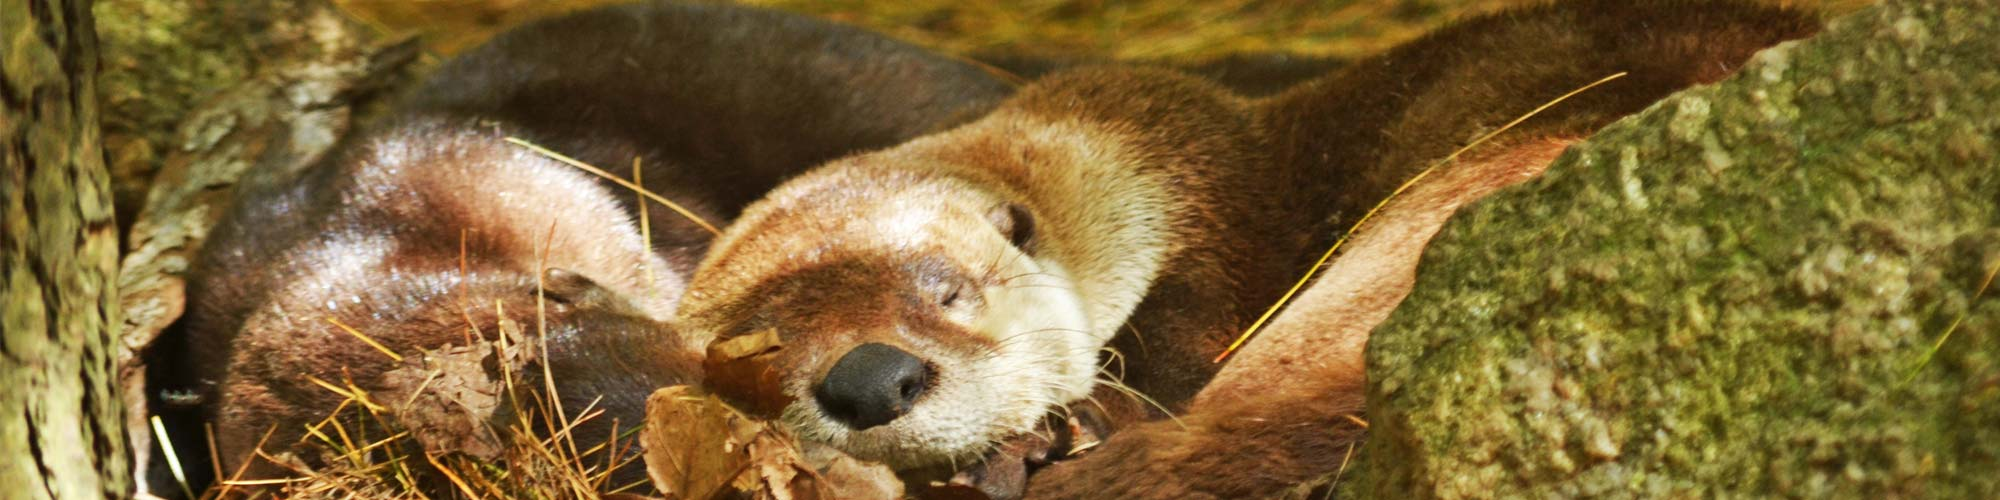 Two river otters curled up sleeping.